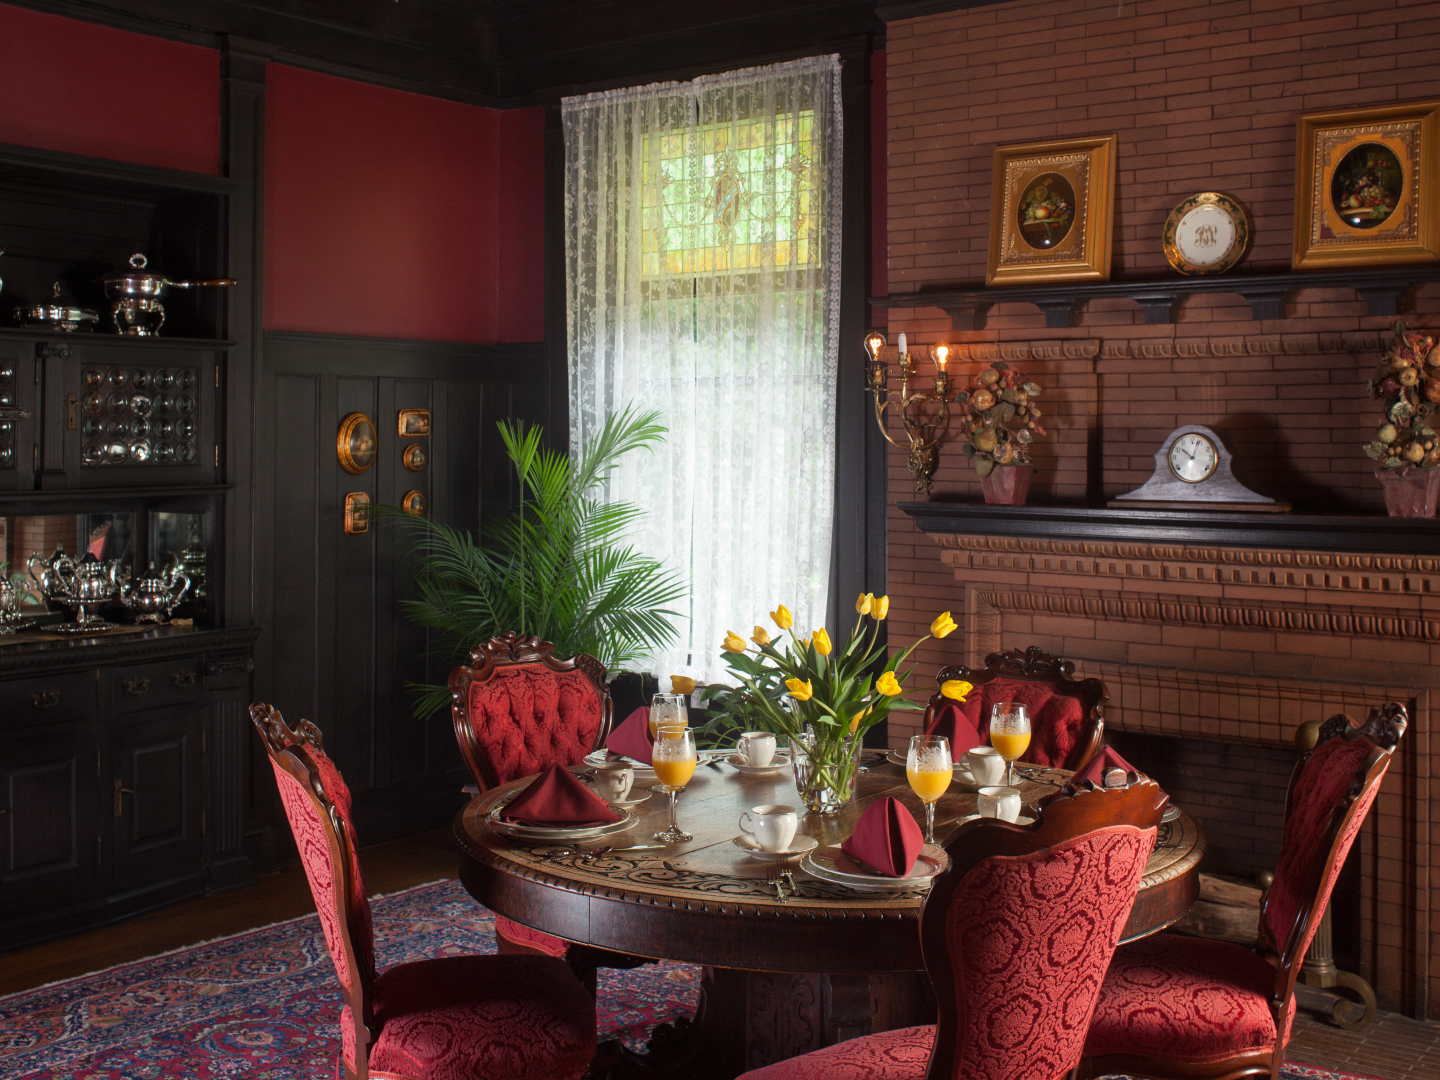 A living room filled with furniture and vase of flowers on a table at Vrooman Mansion.